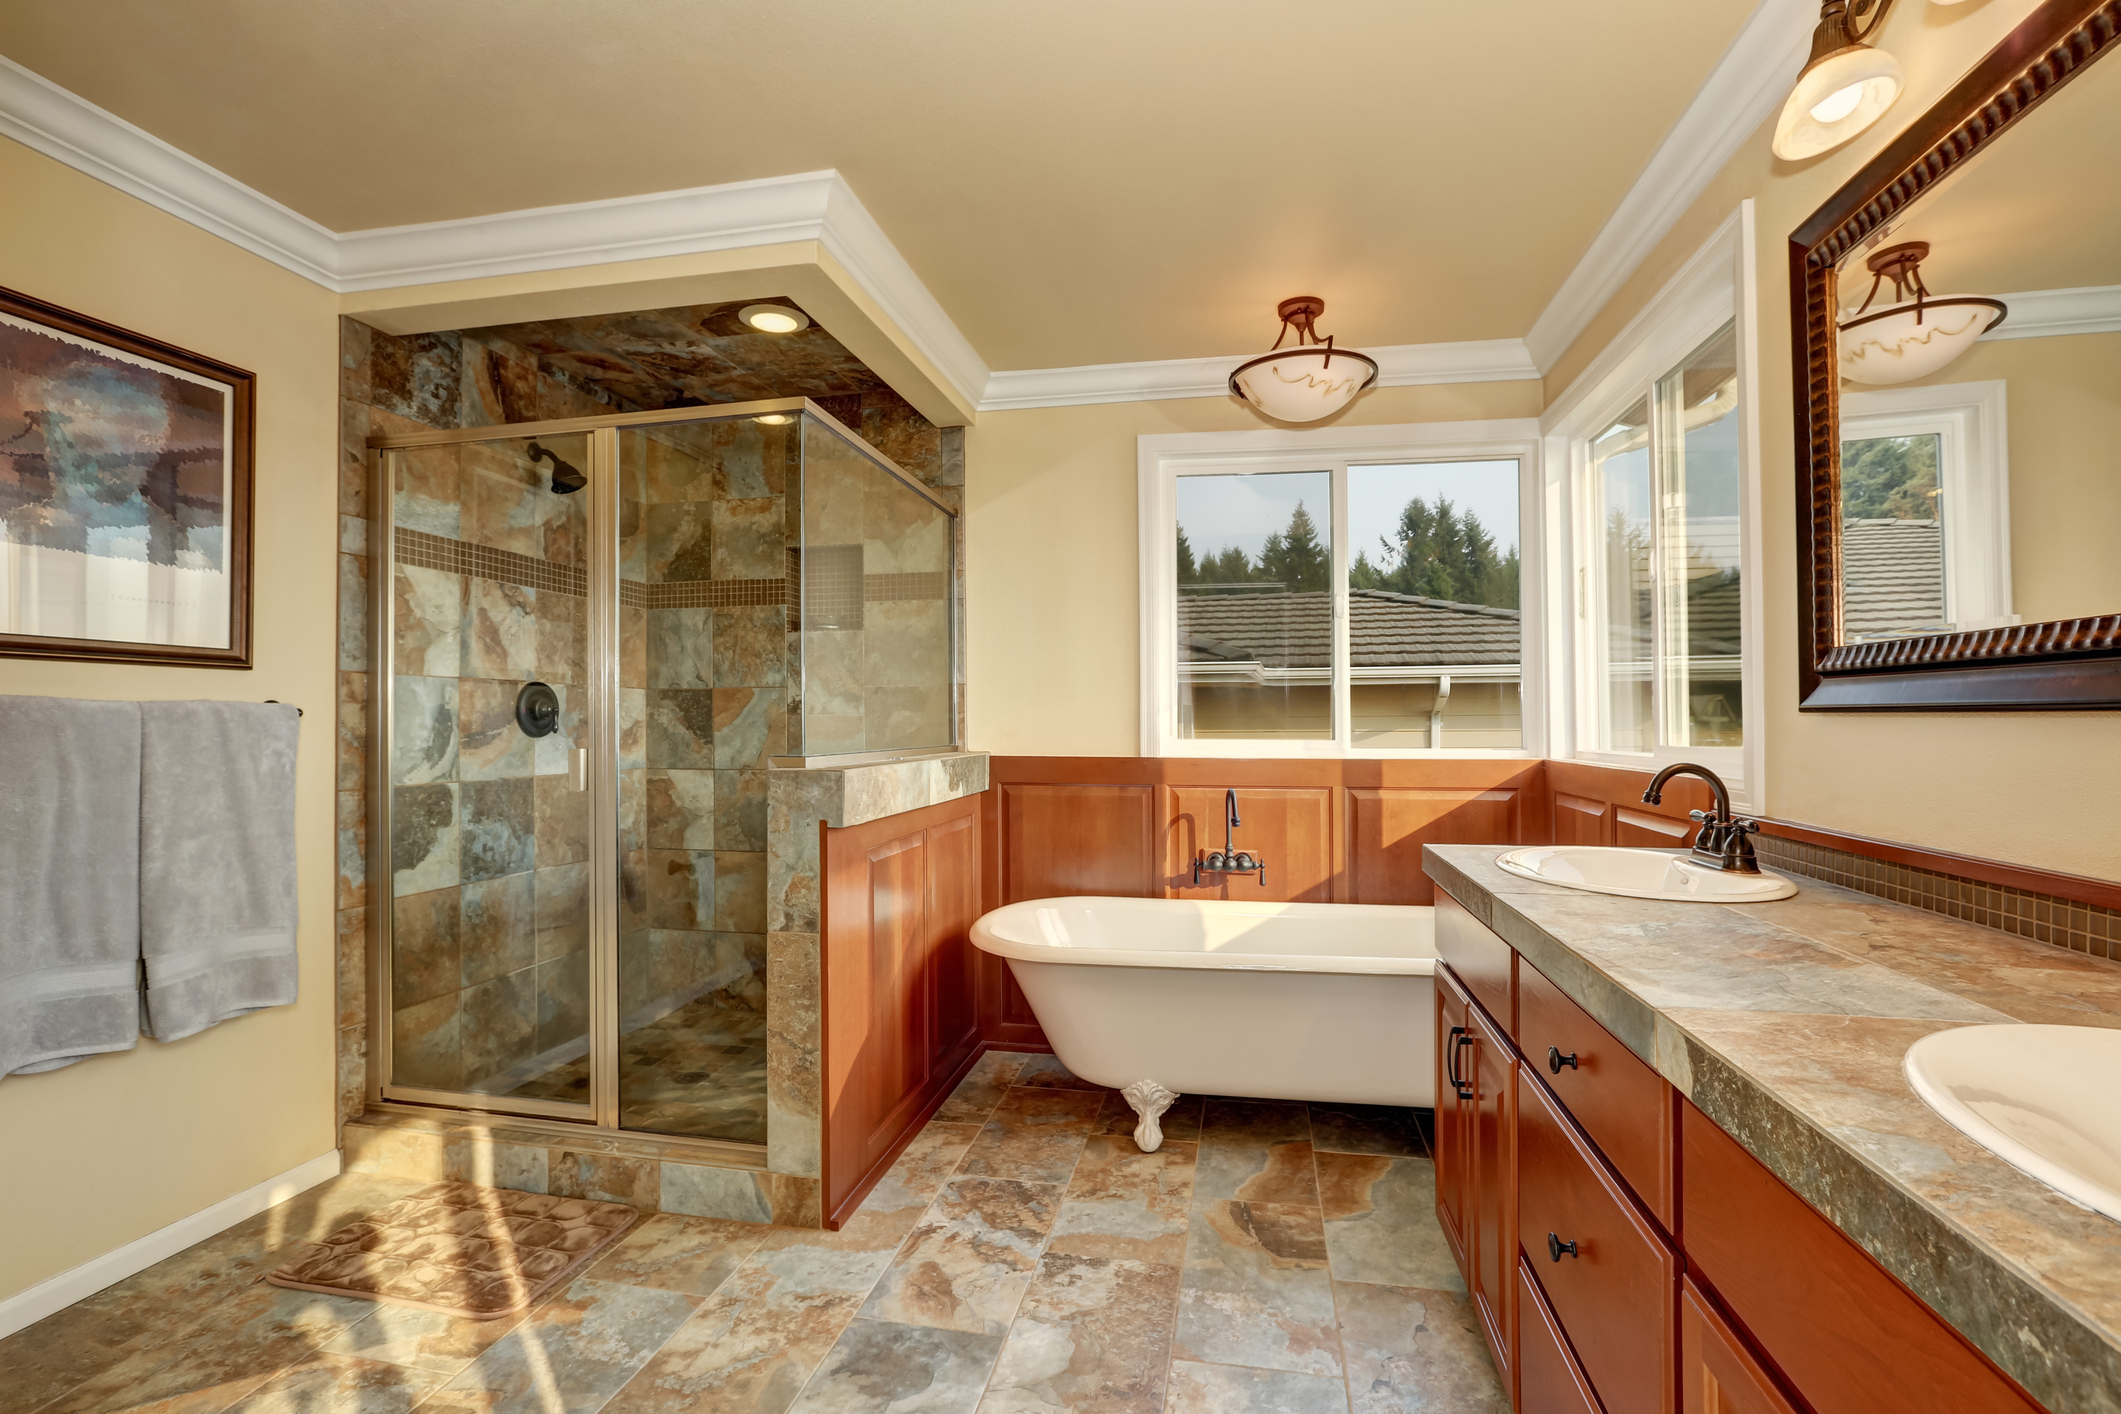 https cleaning lovetoknow com house cleaning tips how care natural stone surfaces